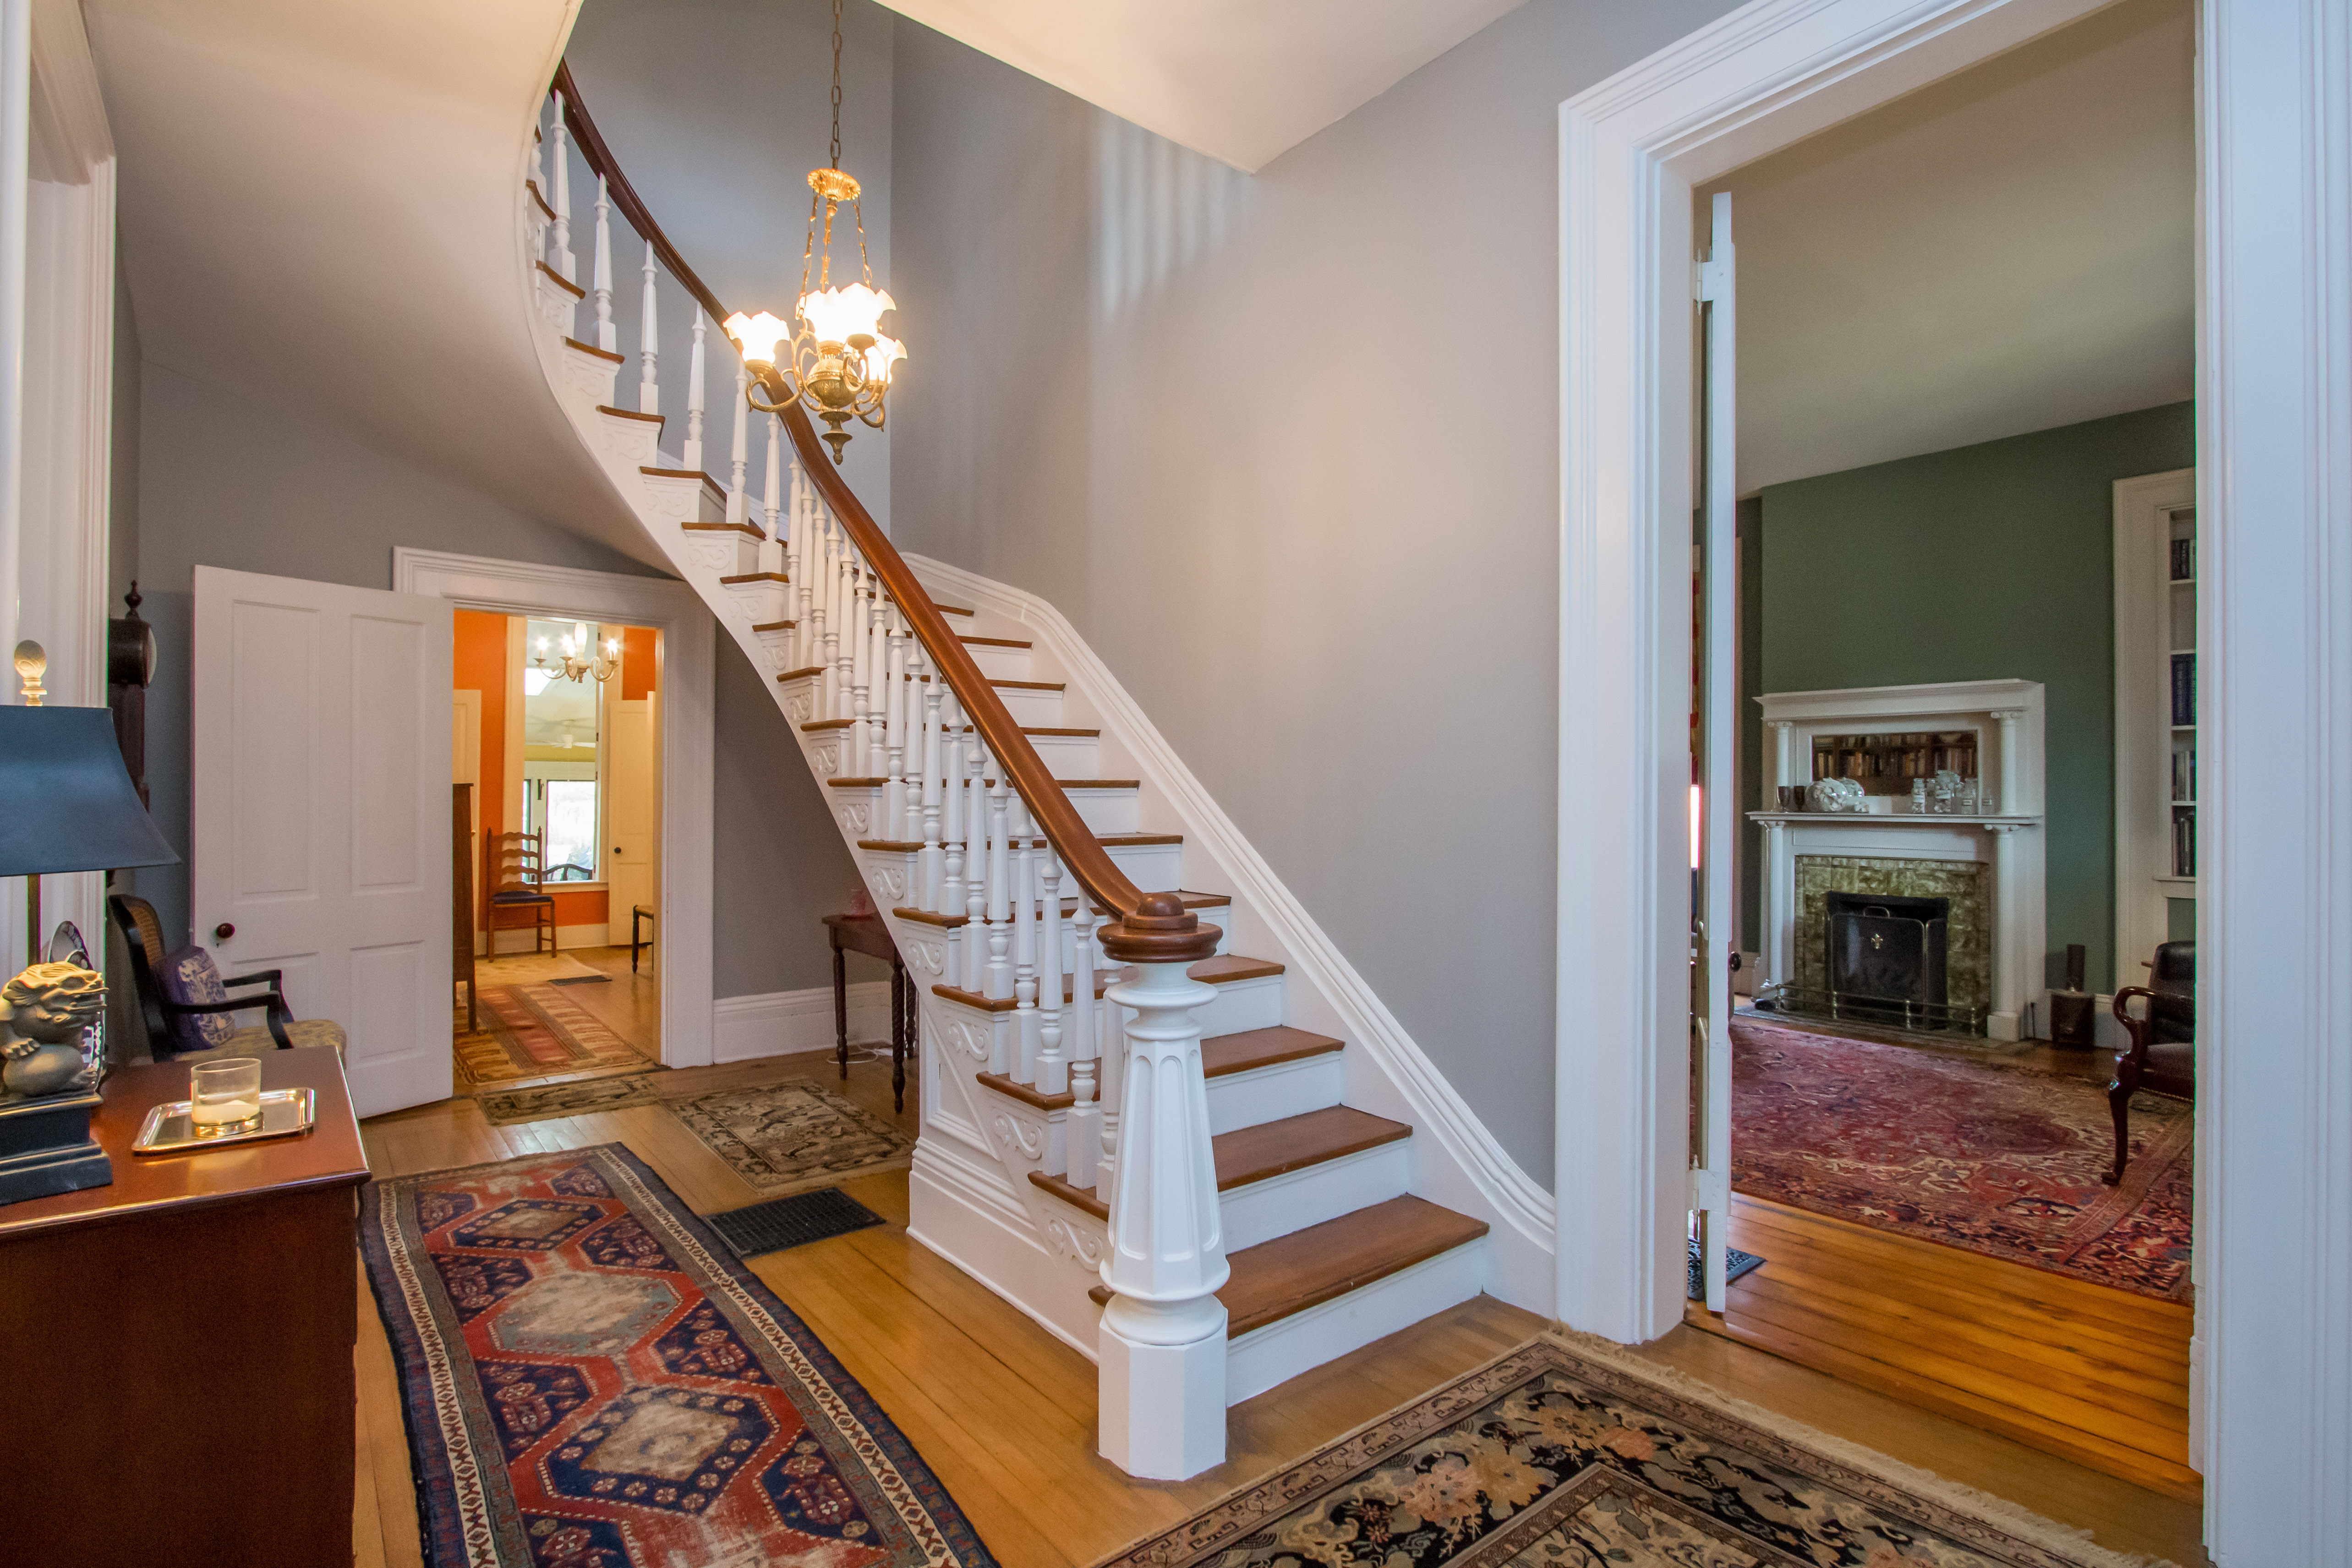 Sweeping staircase at downtown home in Paris KY on Duncan Ave